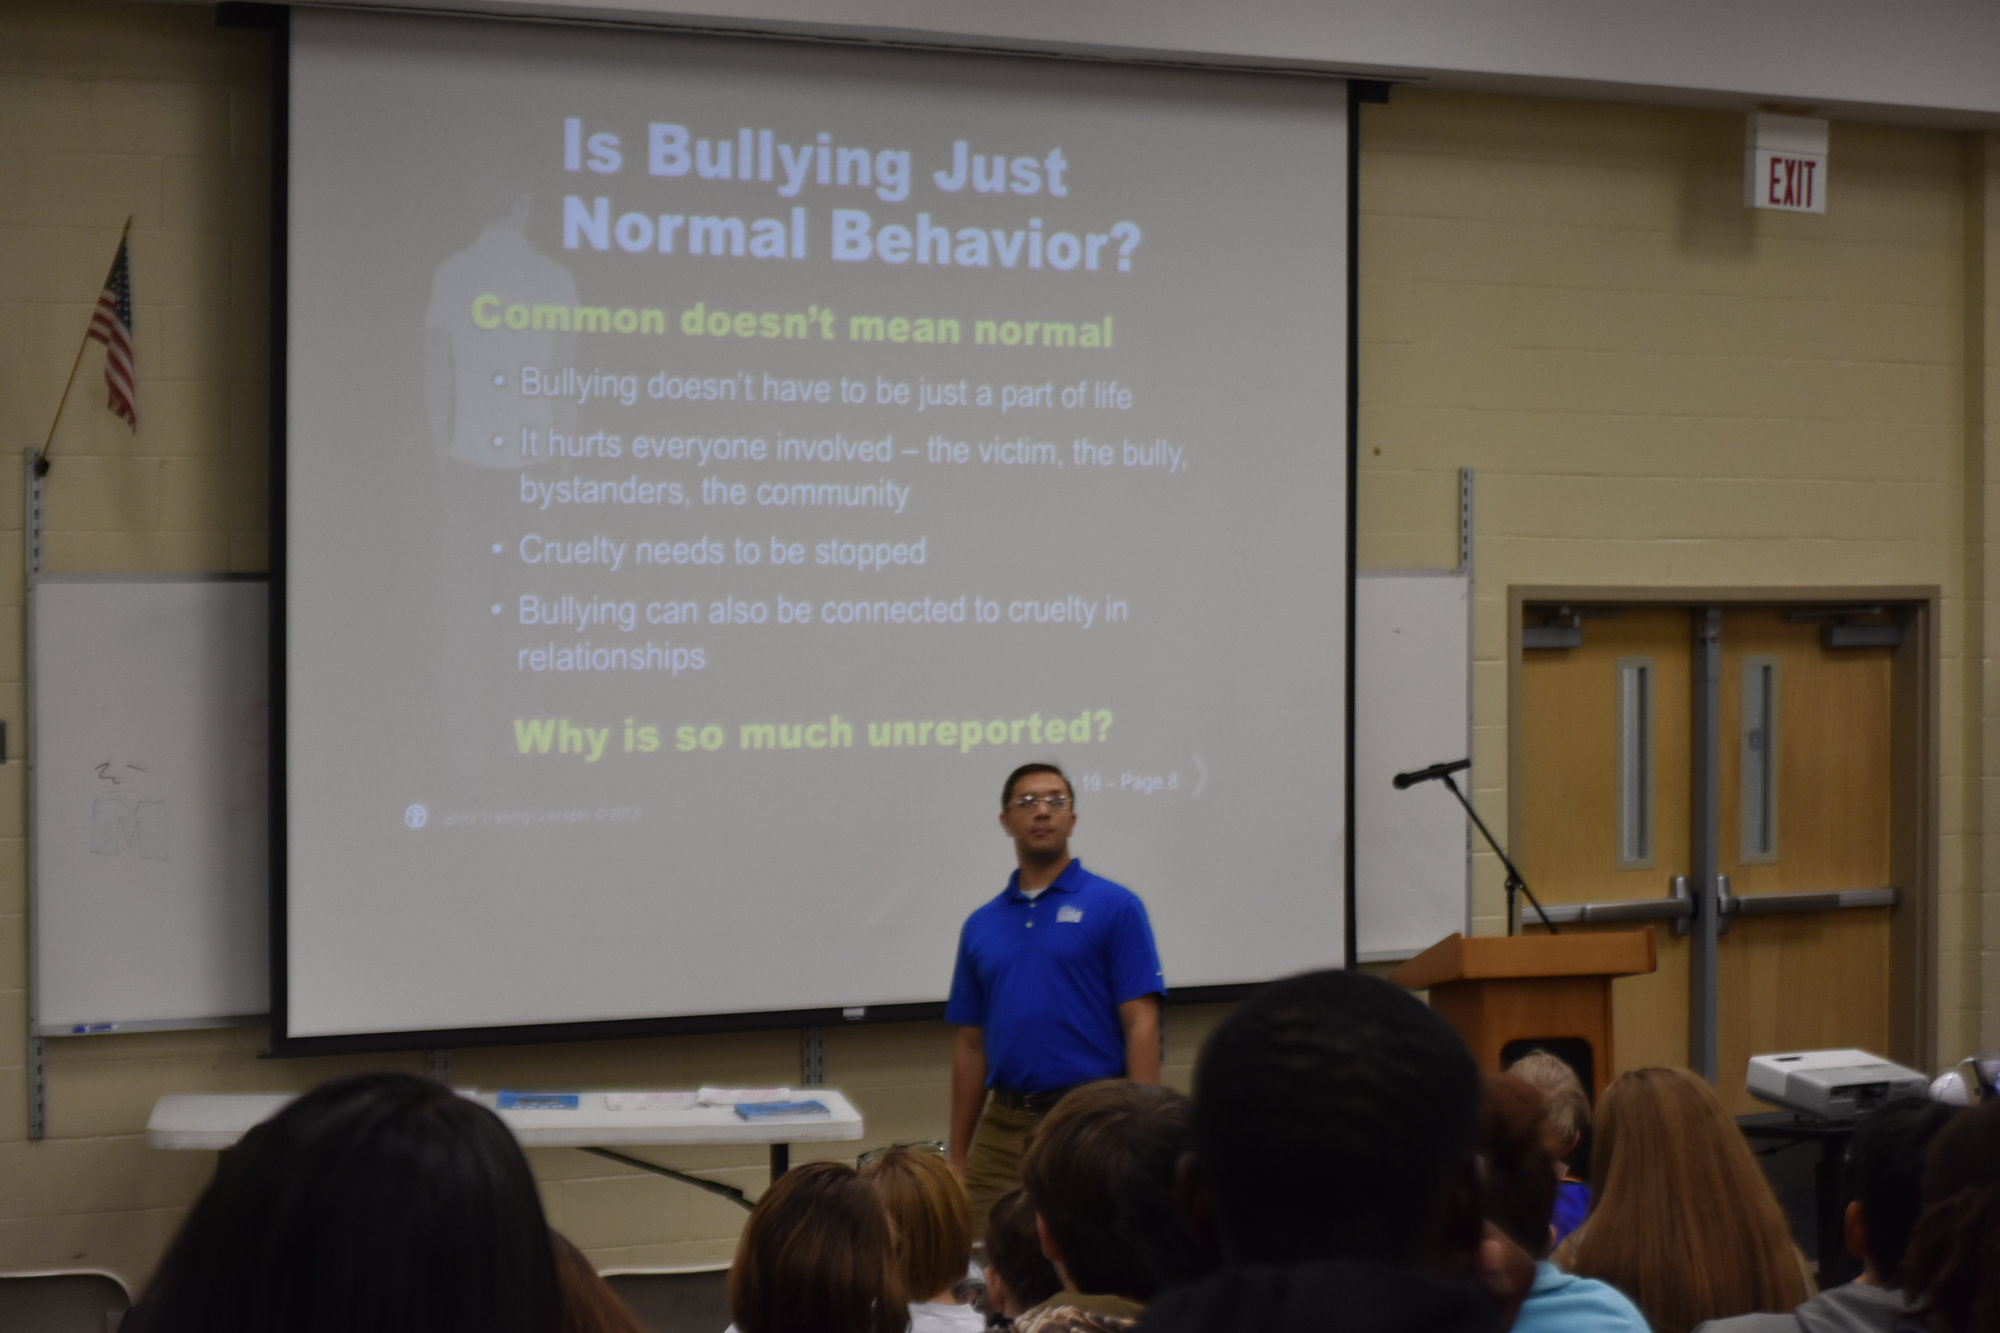 at http://www.theitem.com/stories/manning-high-holds-anti-bullying-presentations,317295